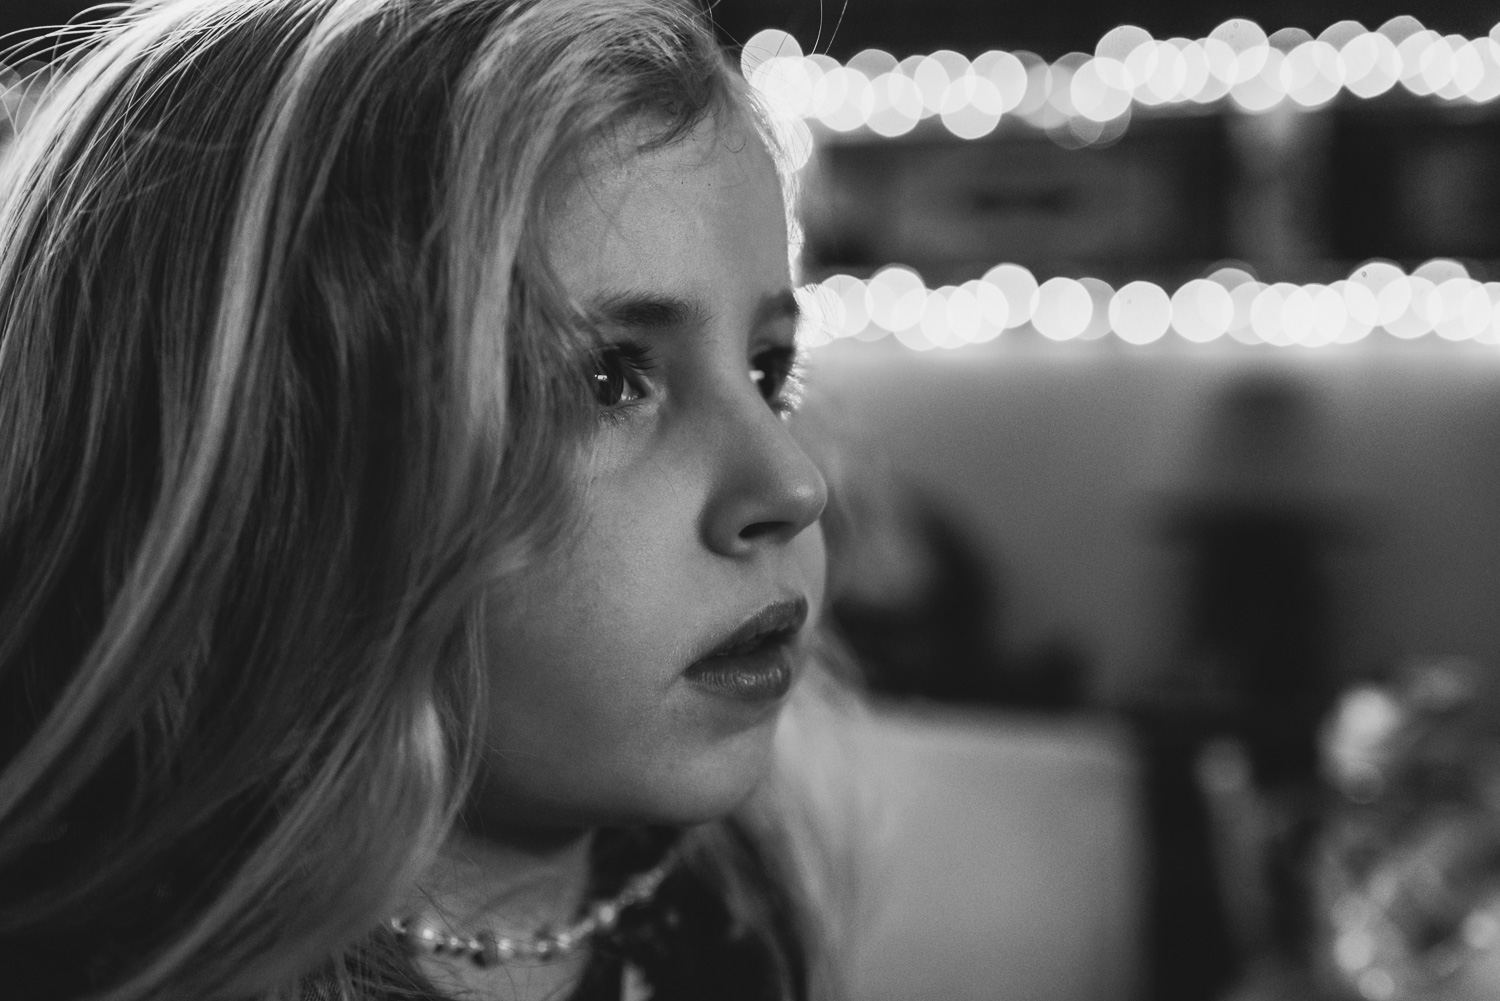 Portrait of little girl in black and white.